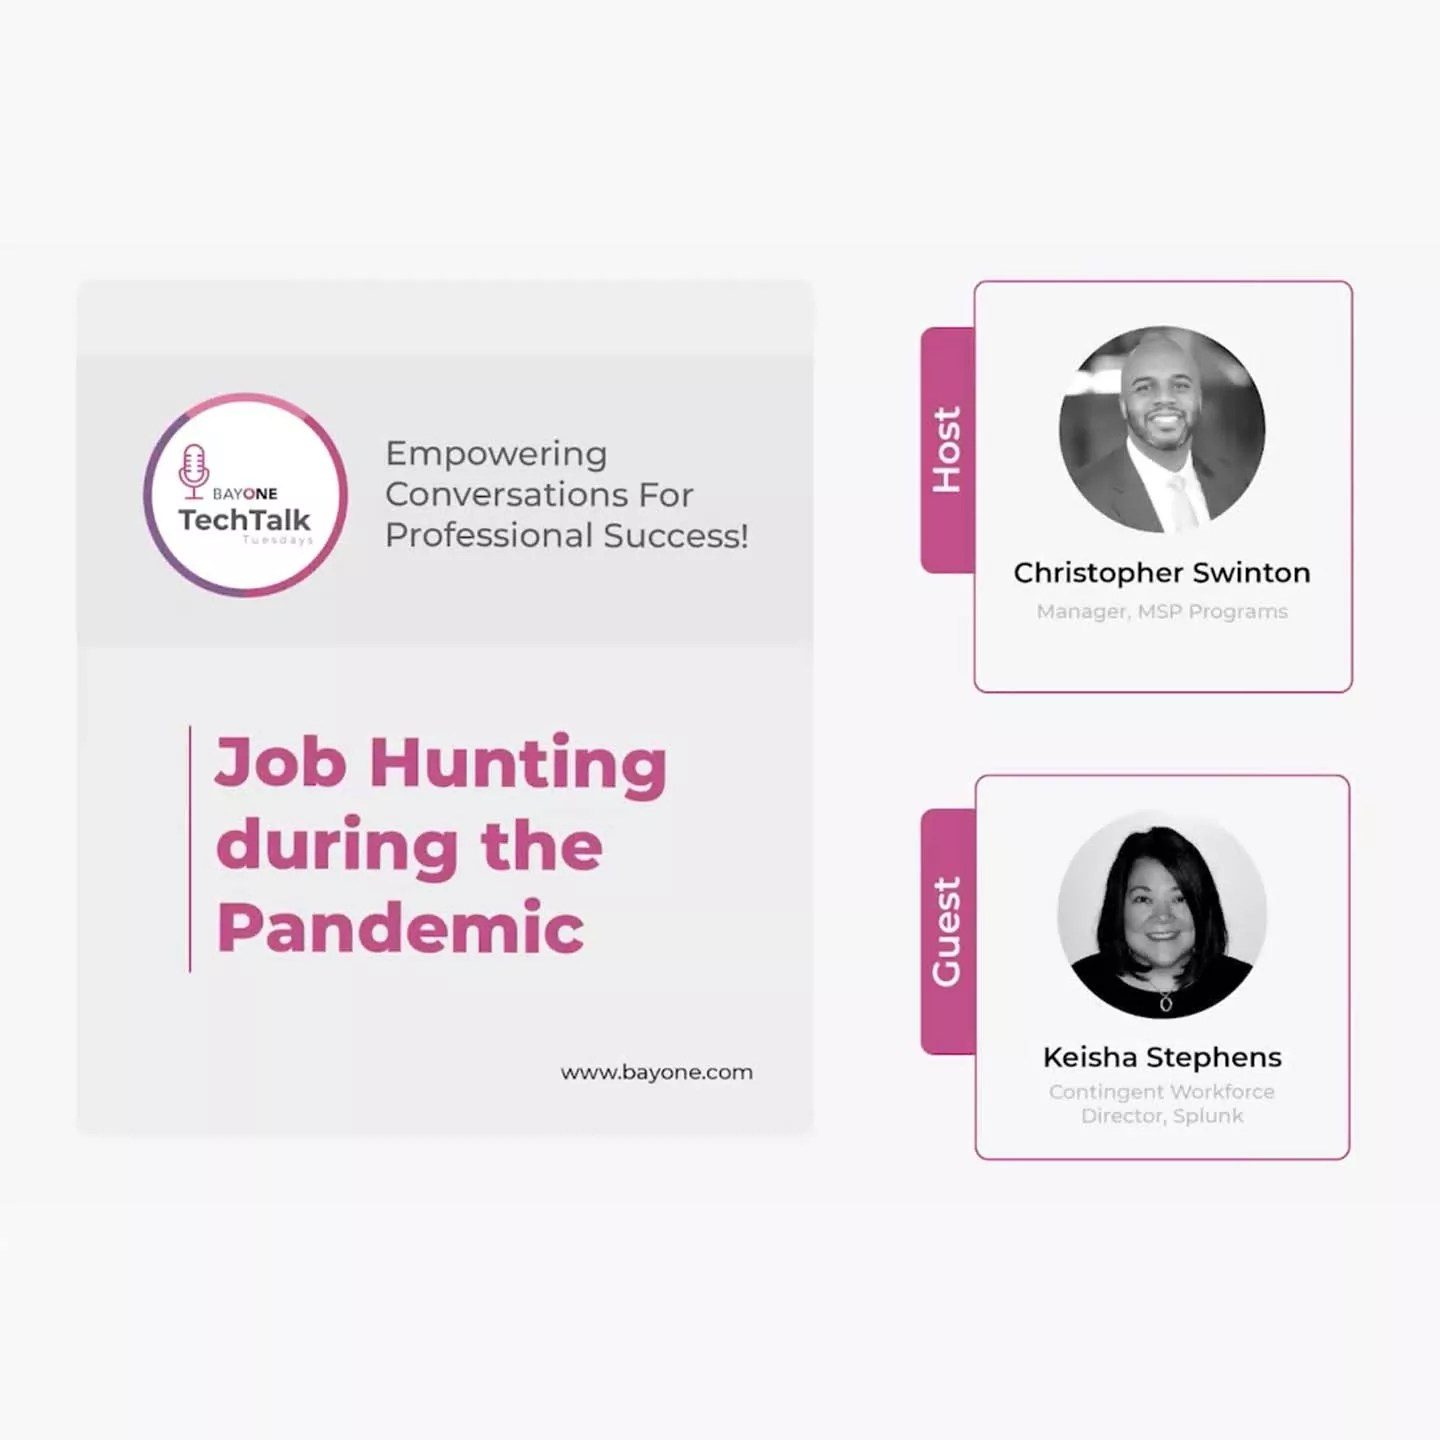 Job Hunting during the Pandemic